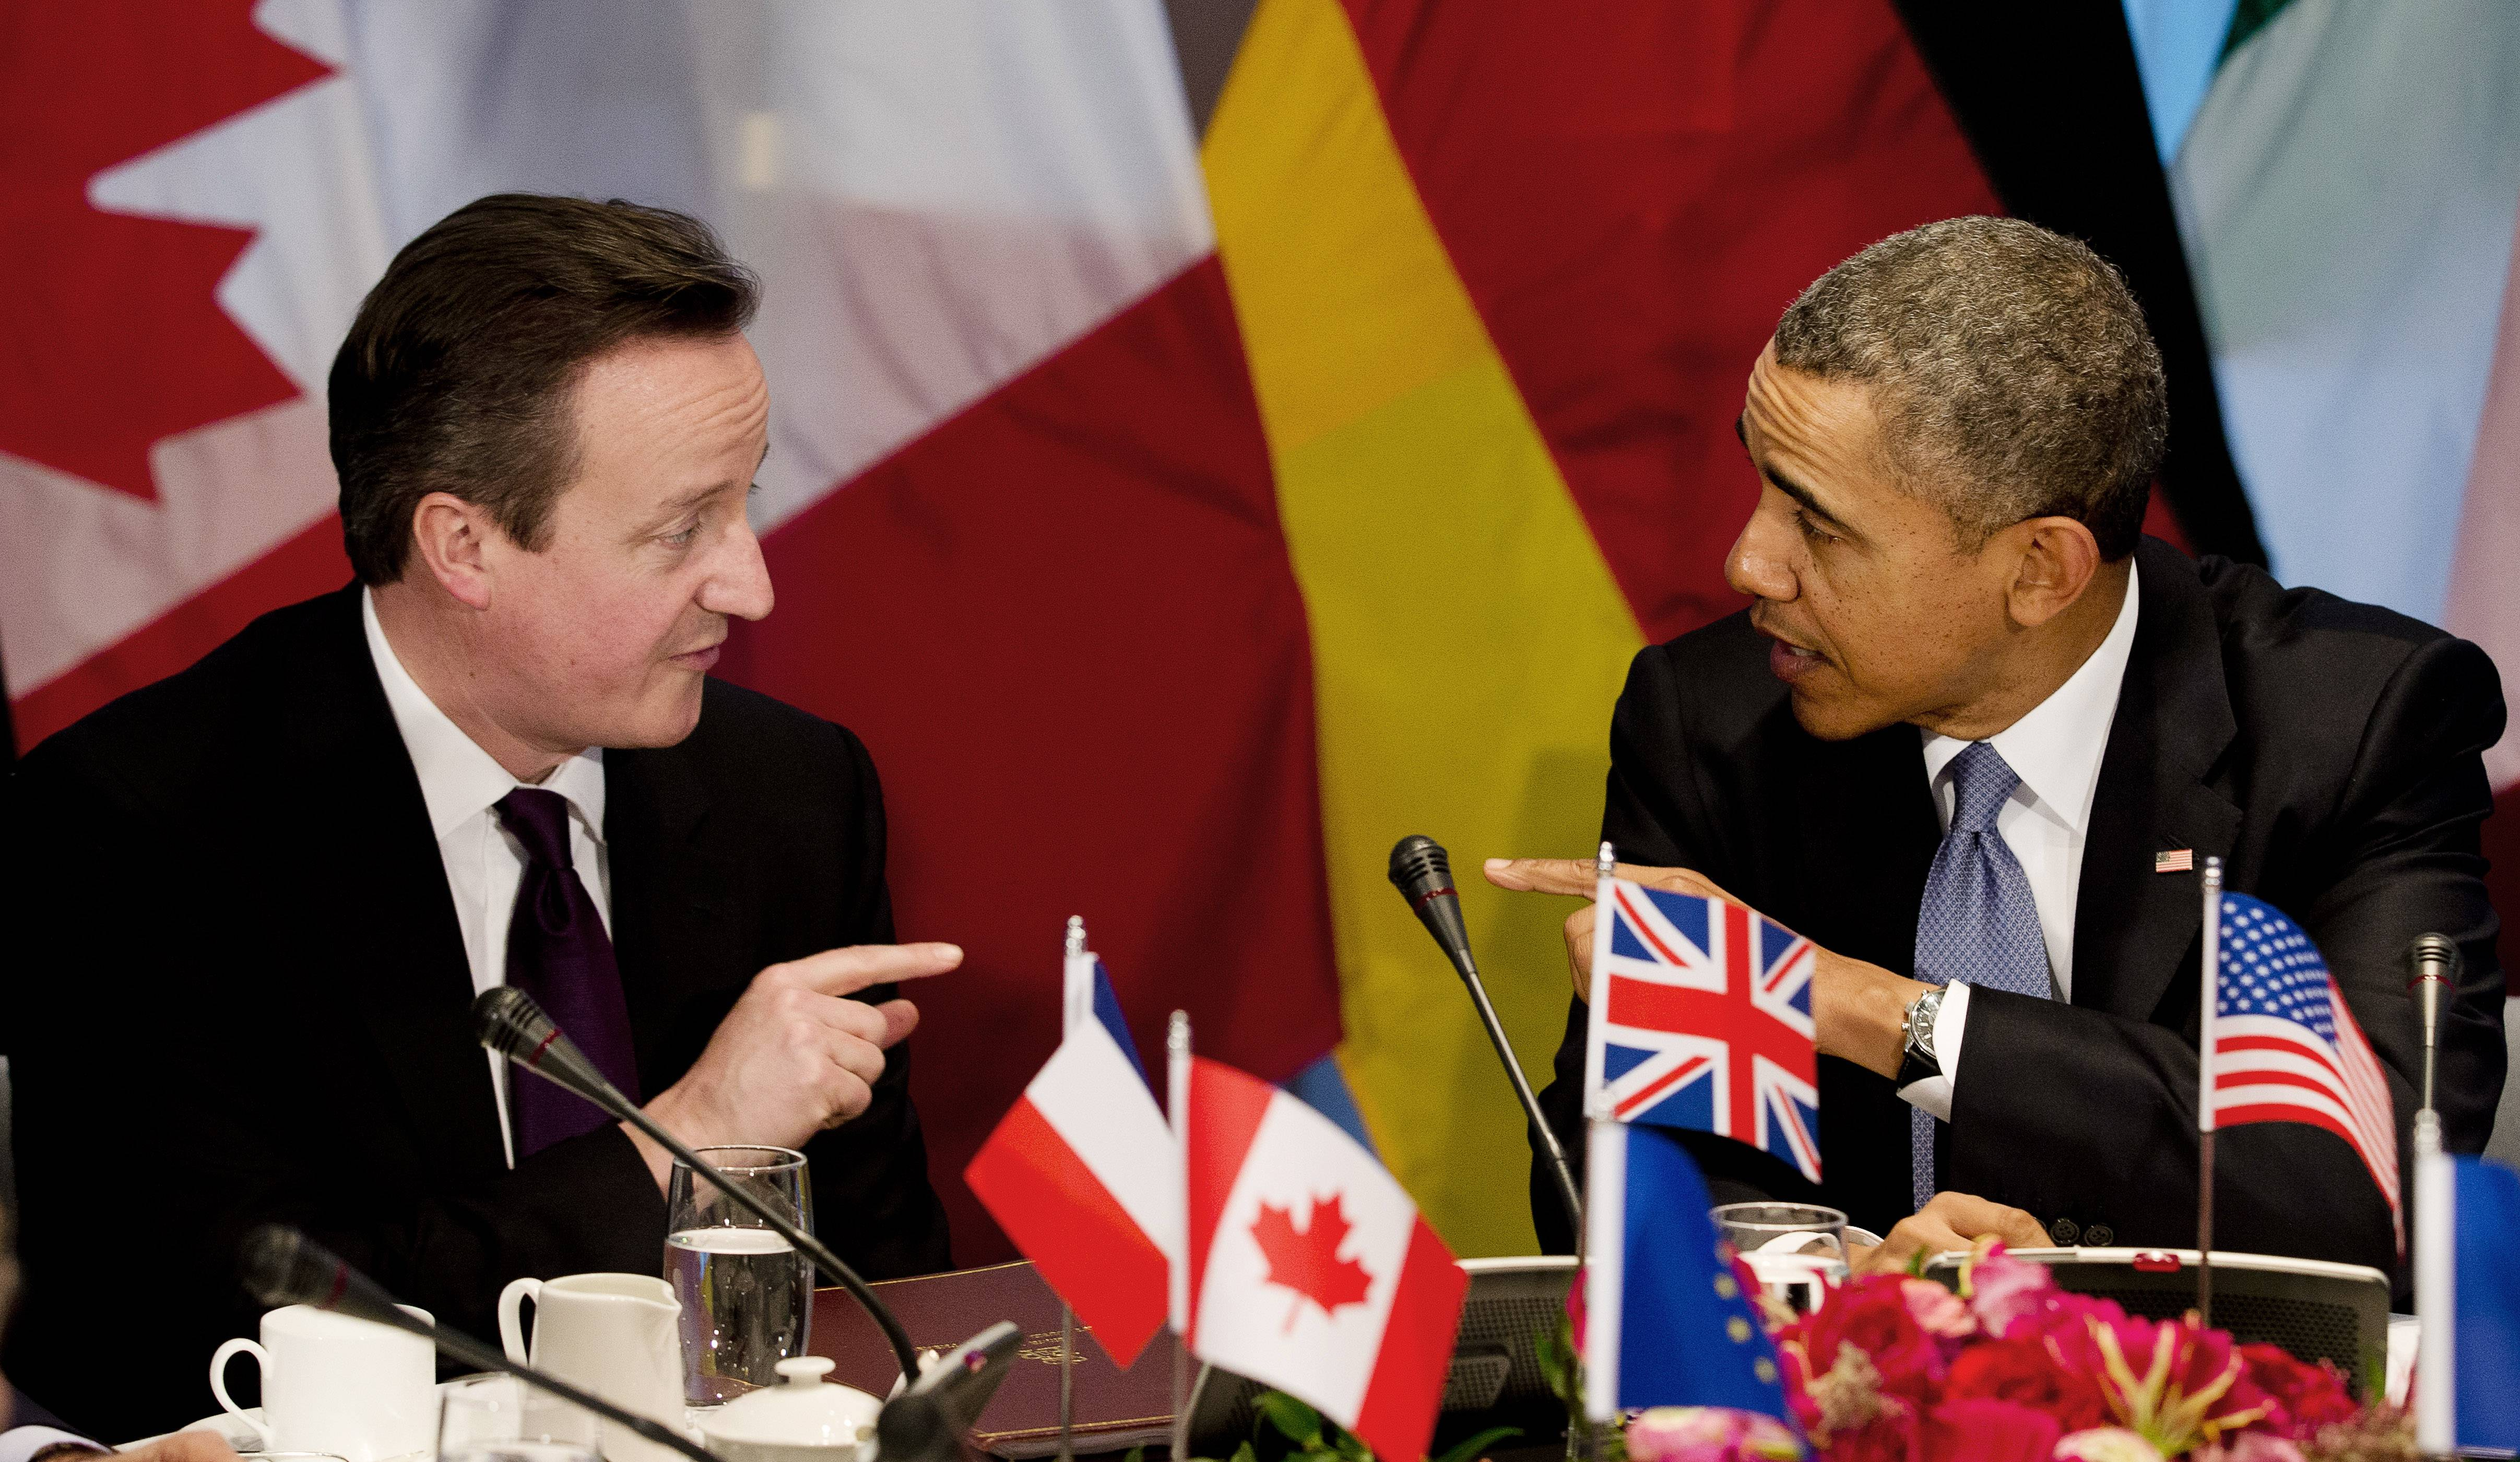 President Barack Obama and British Prime Minister David Cameron, left, took part in a meeting of G7 world leaders in The Hague, Netherlands. The focus of the hurriedly scheduled meeting was to address the crisis in Ukraine.